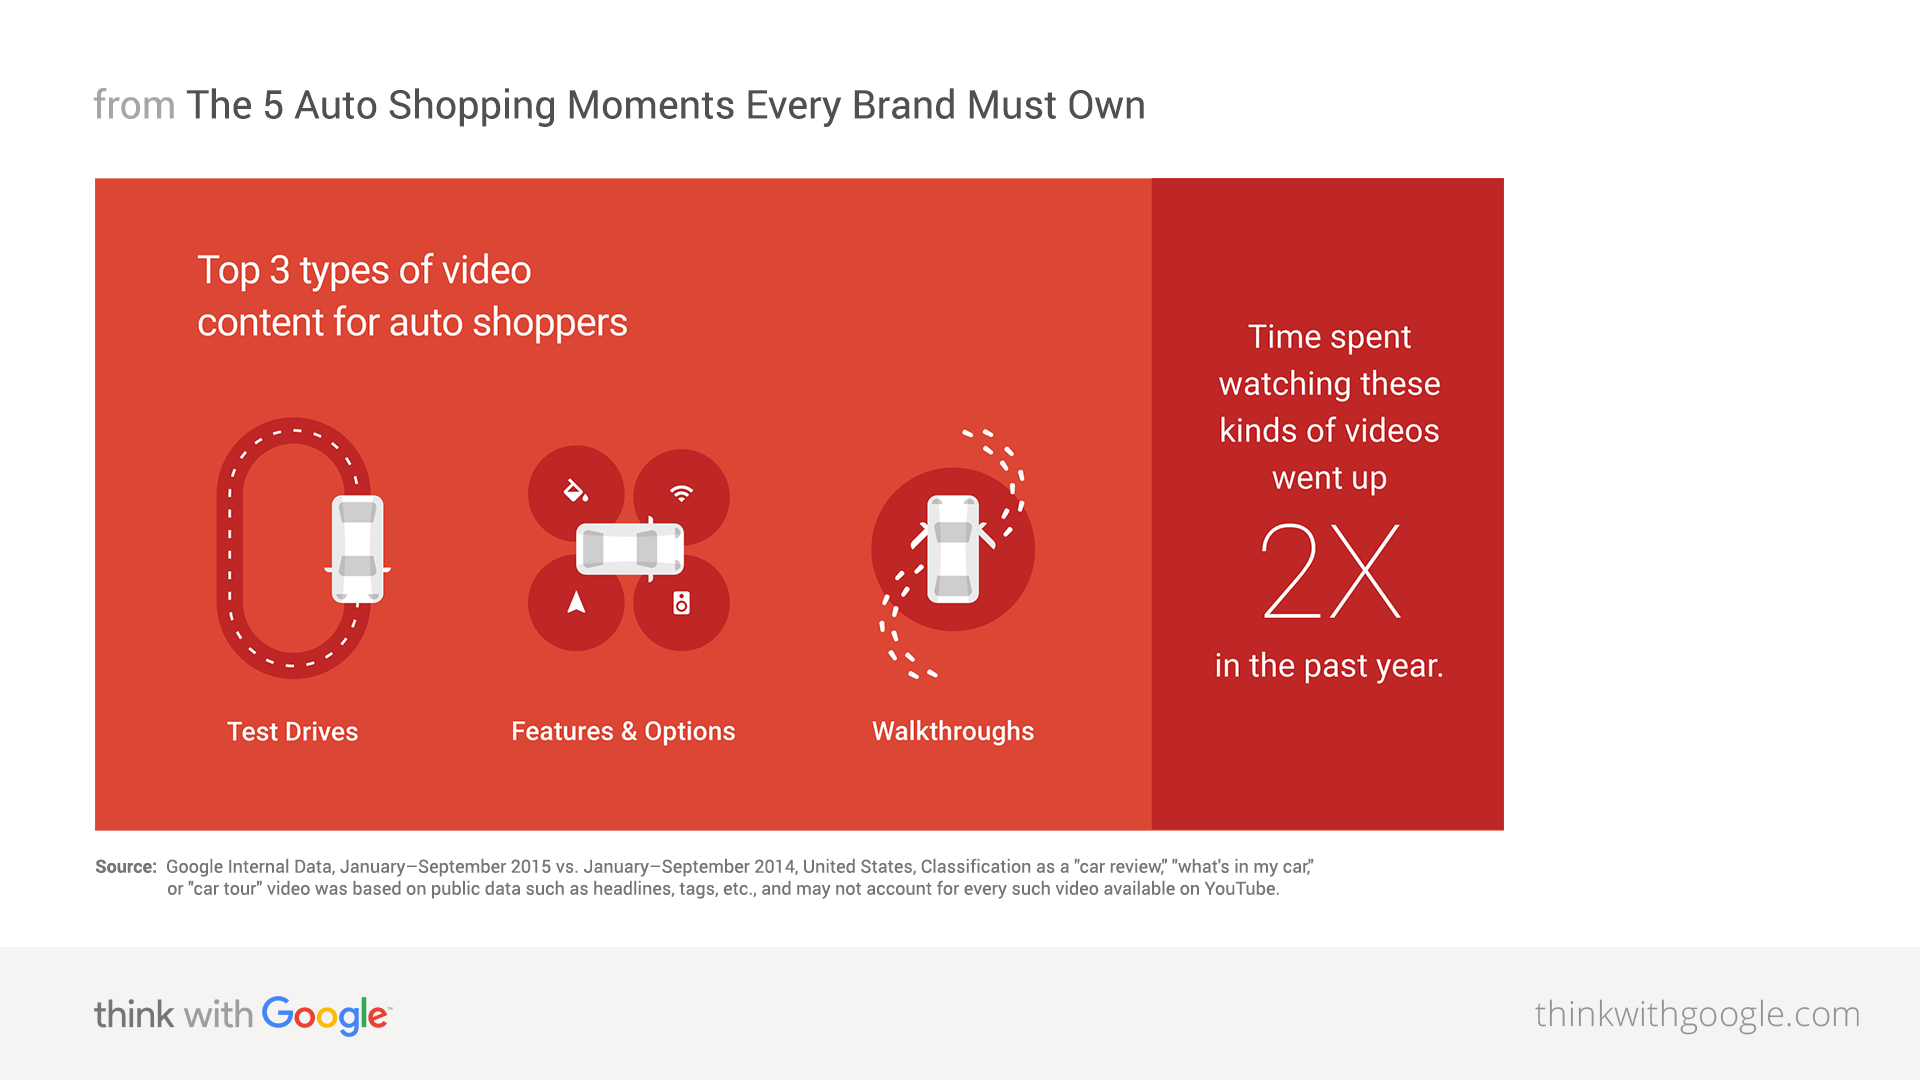 Consumers in the Micro-Moment: What it Means for Auto Brands